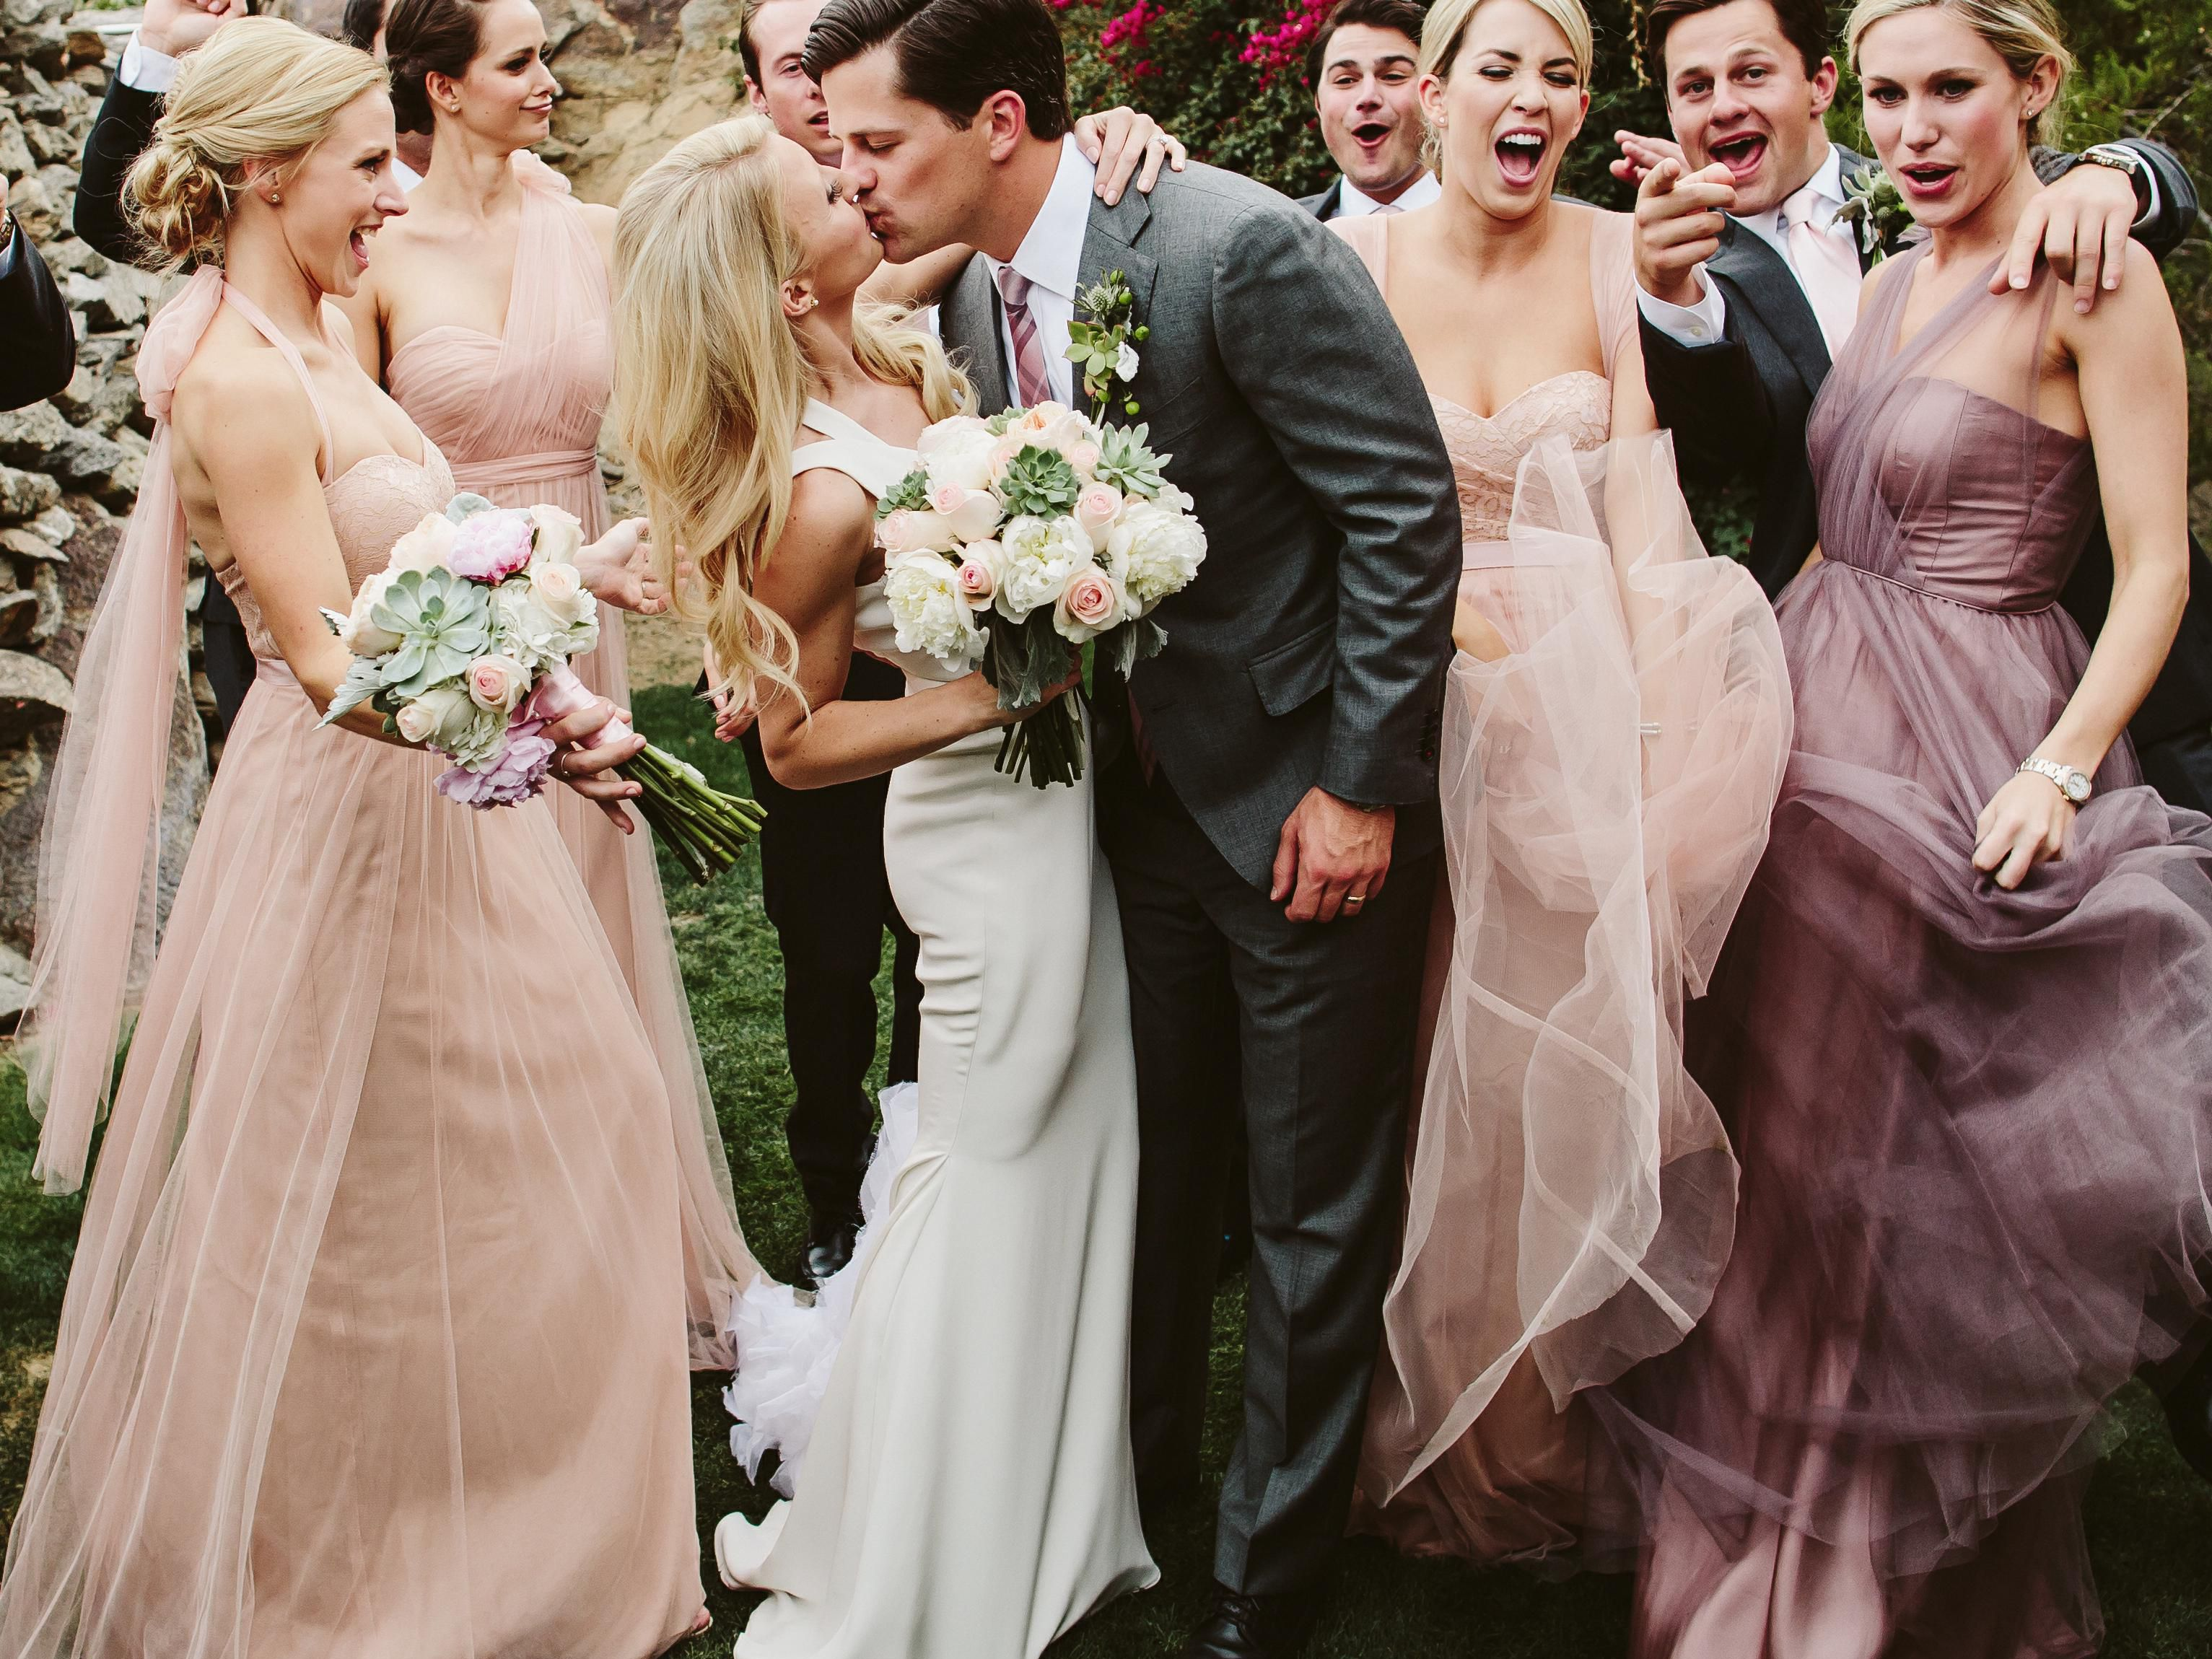 How To Figure Out The Order Of Bridesmaids And Groomsmen At The Ceremony